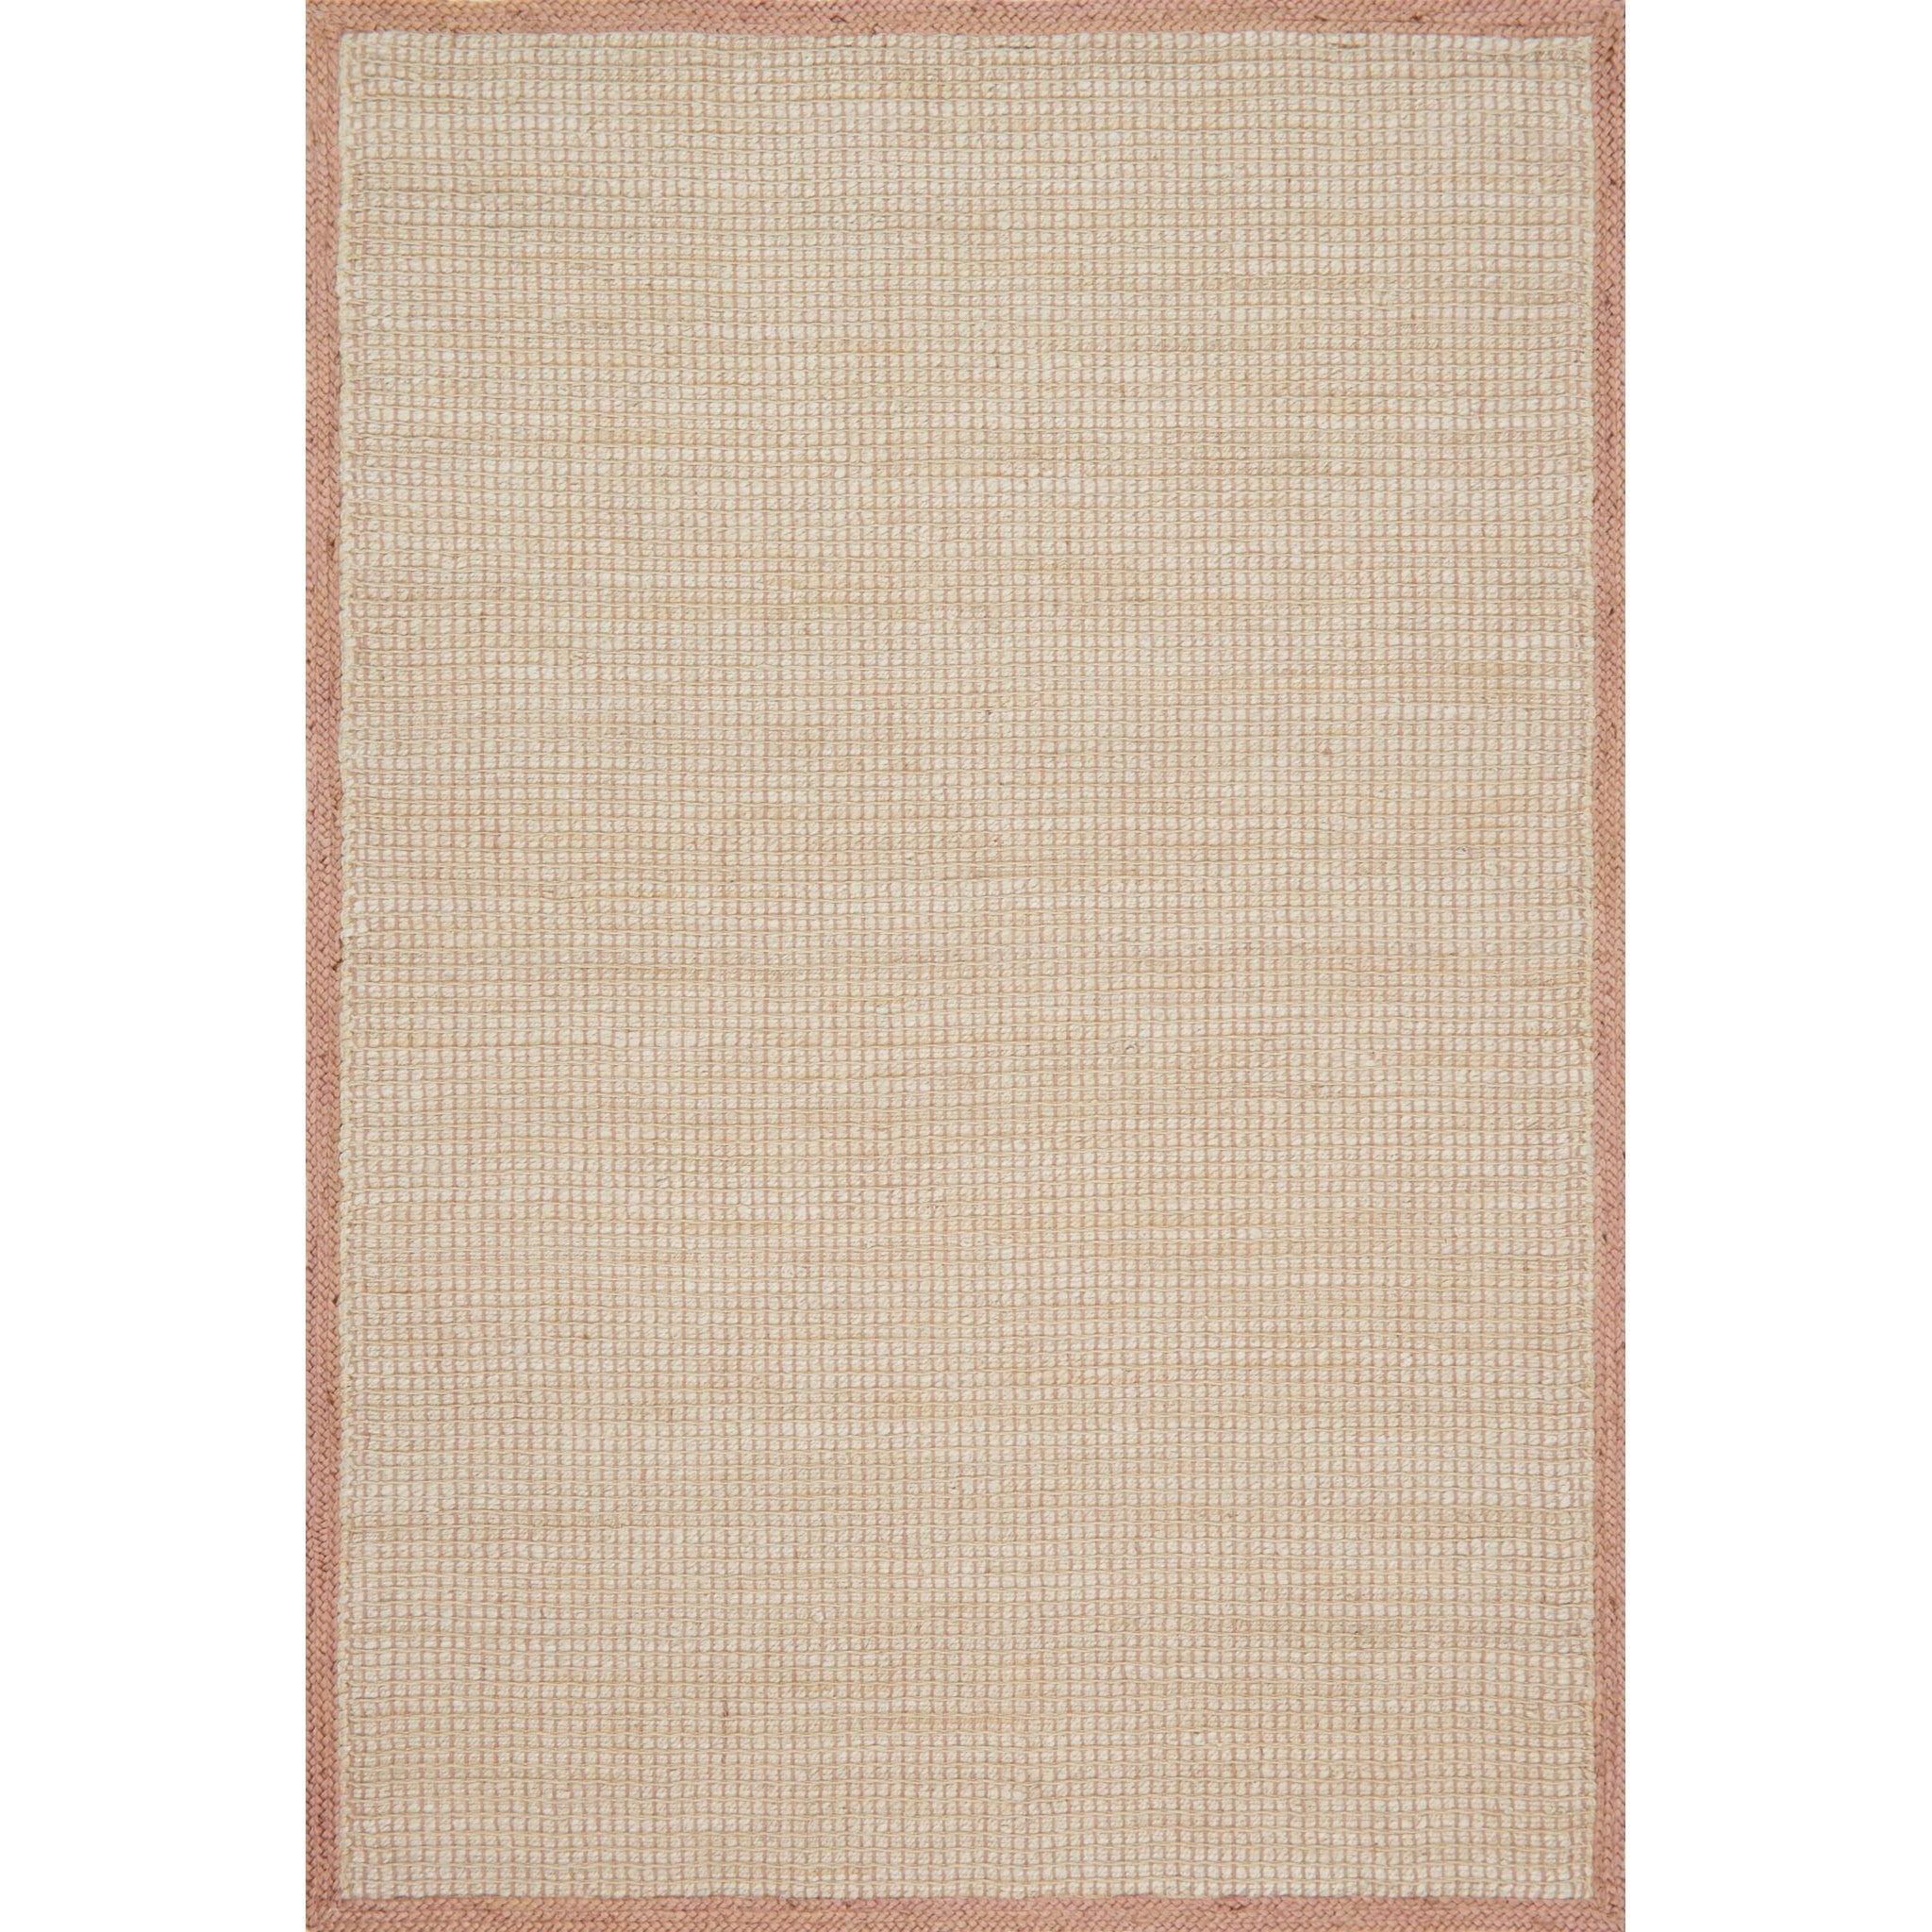 Large Rugs Sydney Magnolia Home By Joanna Gaines For Loloi Sydney 9 3